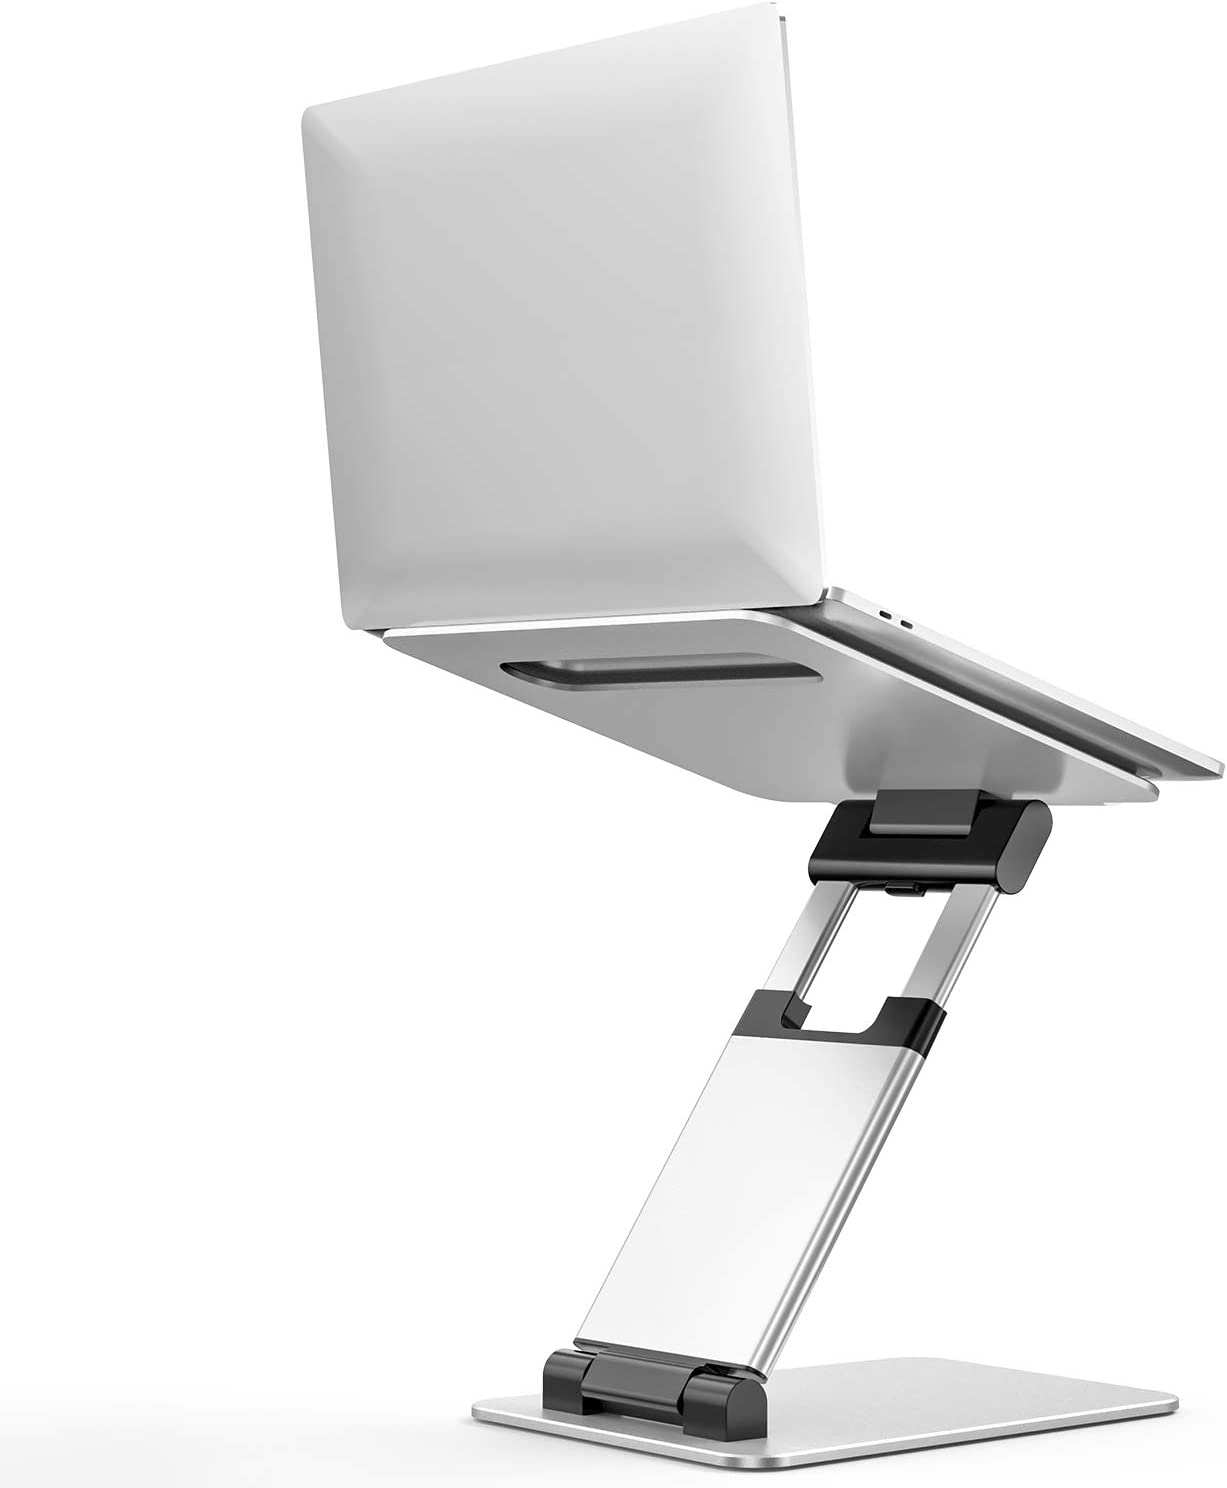 Laptop Stand, DUCHY Ergonomic Laptop Riser Computer Stand for Laptop,Adjustable Laptop Holder Height from 2.1